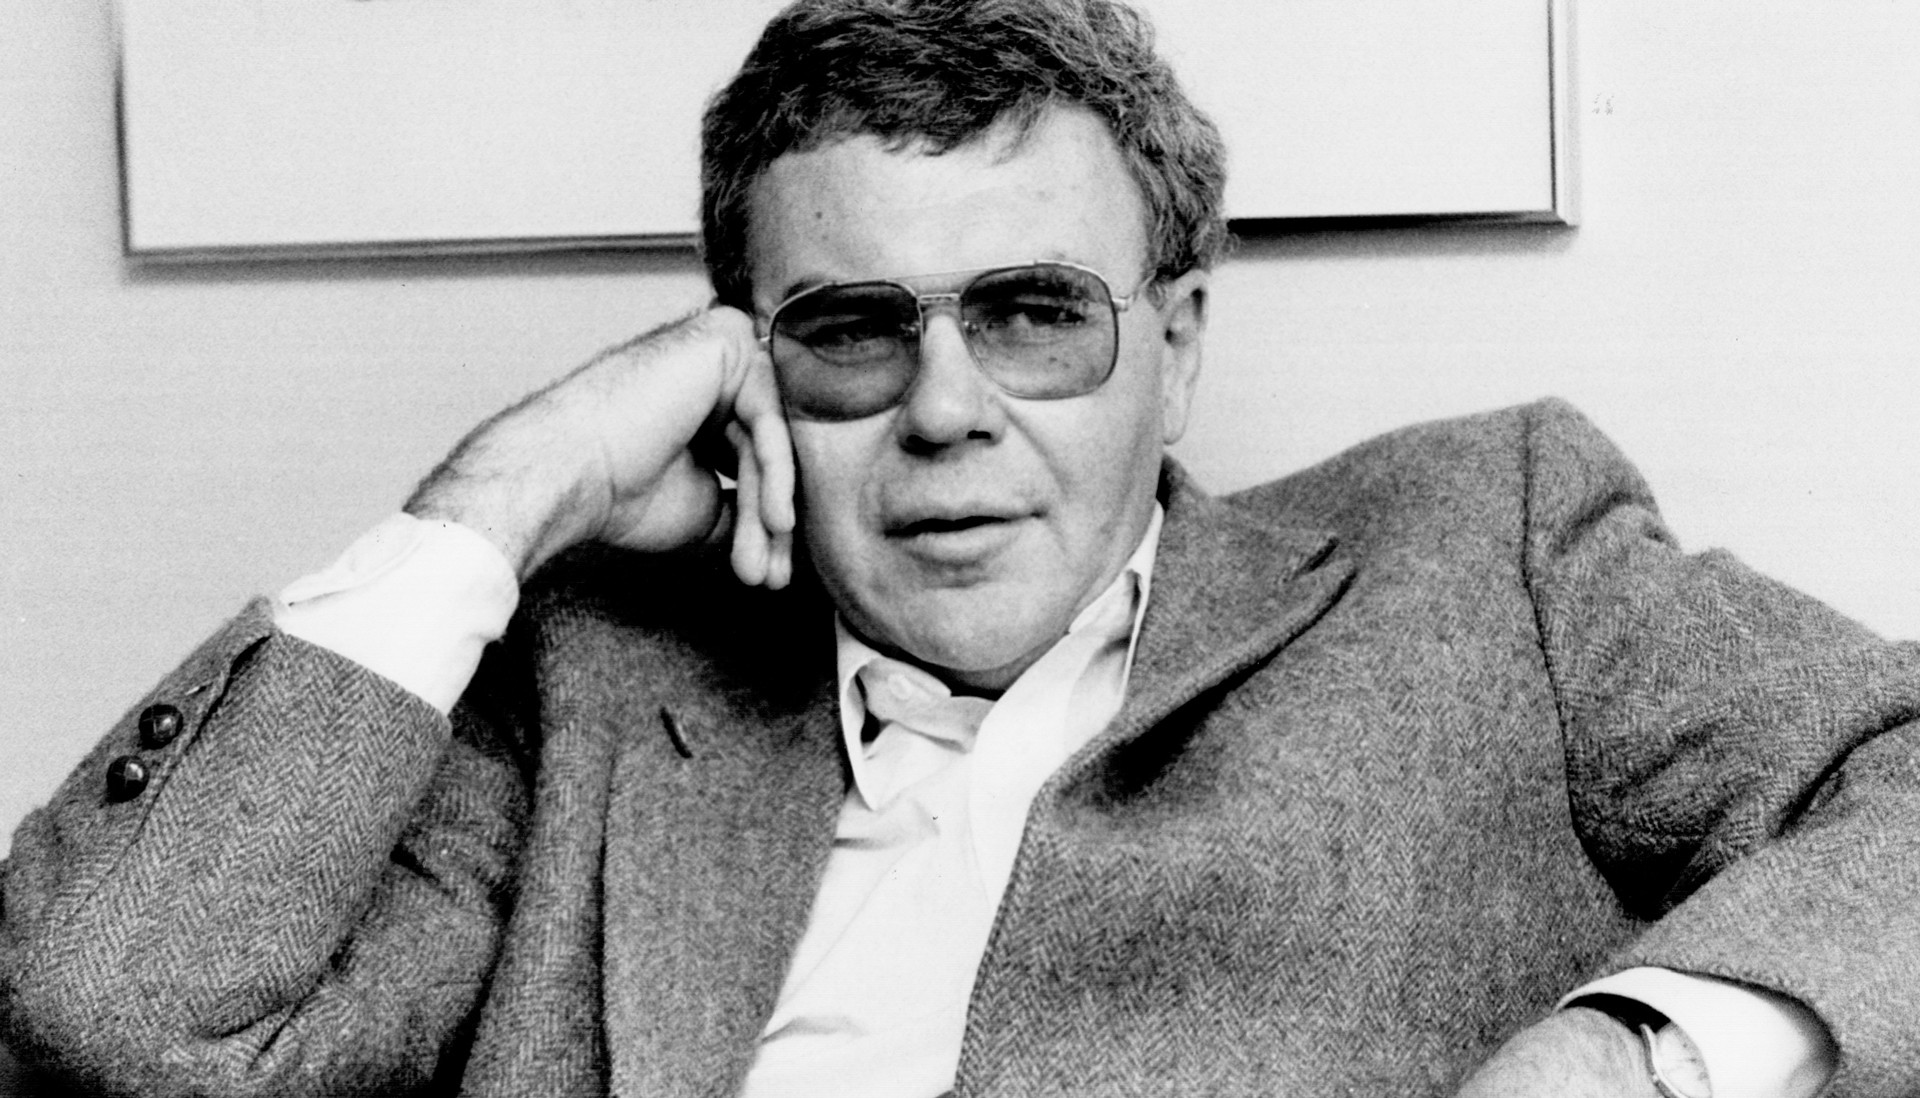 raymond carver cathedral essay college tendersz raymond carver cathedral essay